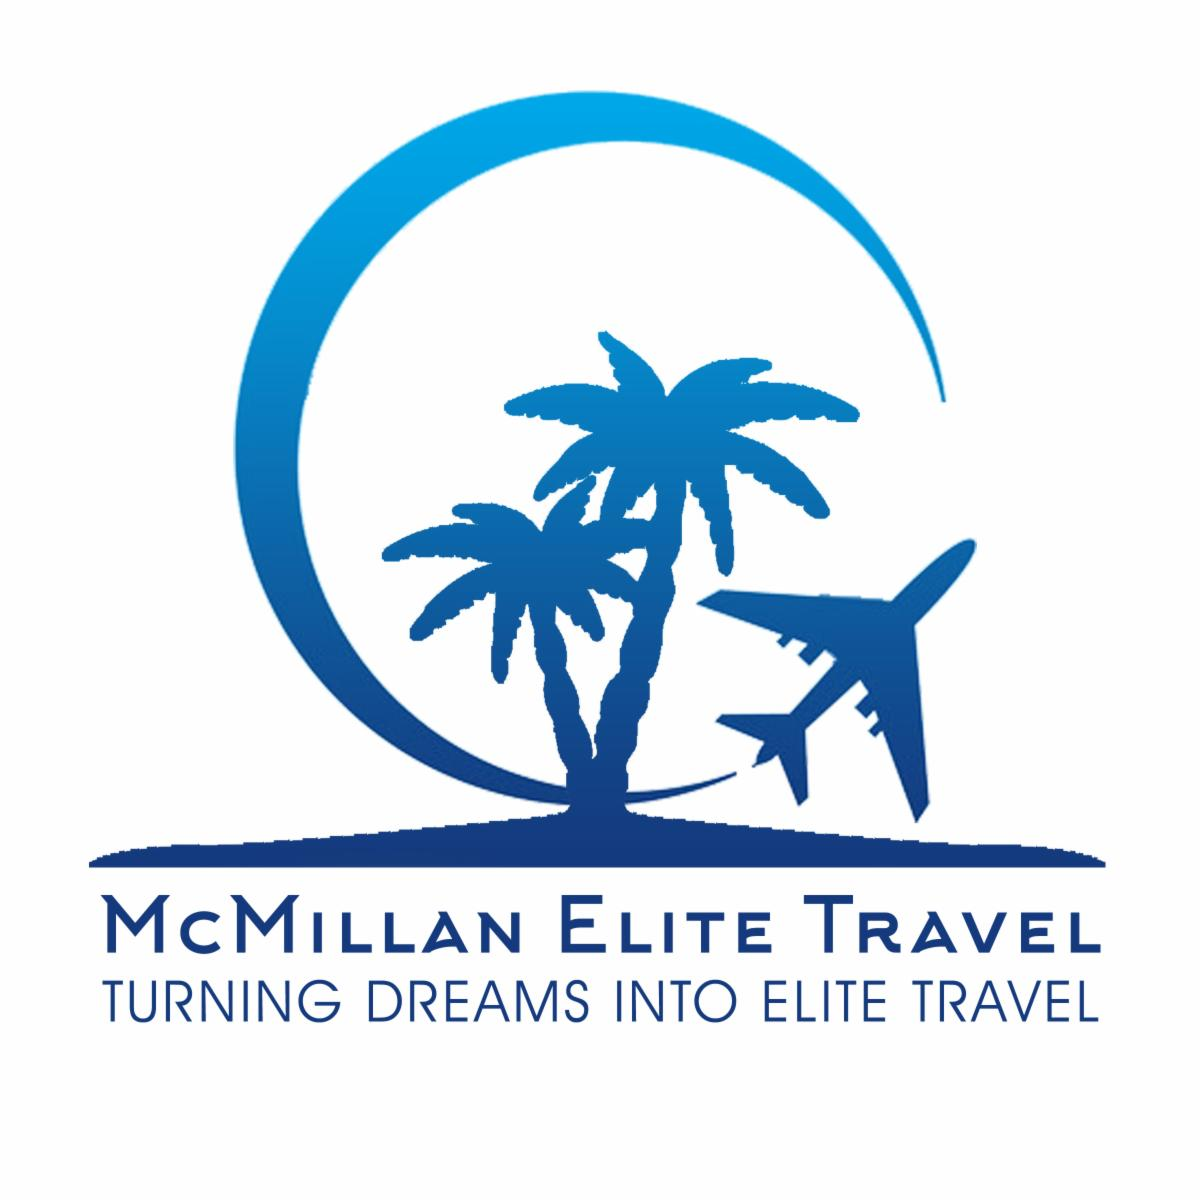 McMillan Elite Travel Logo -- Palm trees on a beach are surrounded by a crescent moon which connects into a plane taking off into the air.